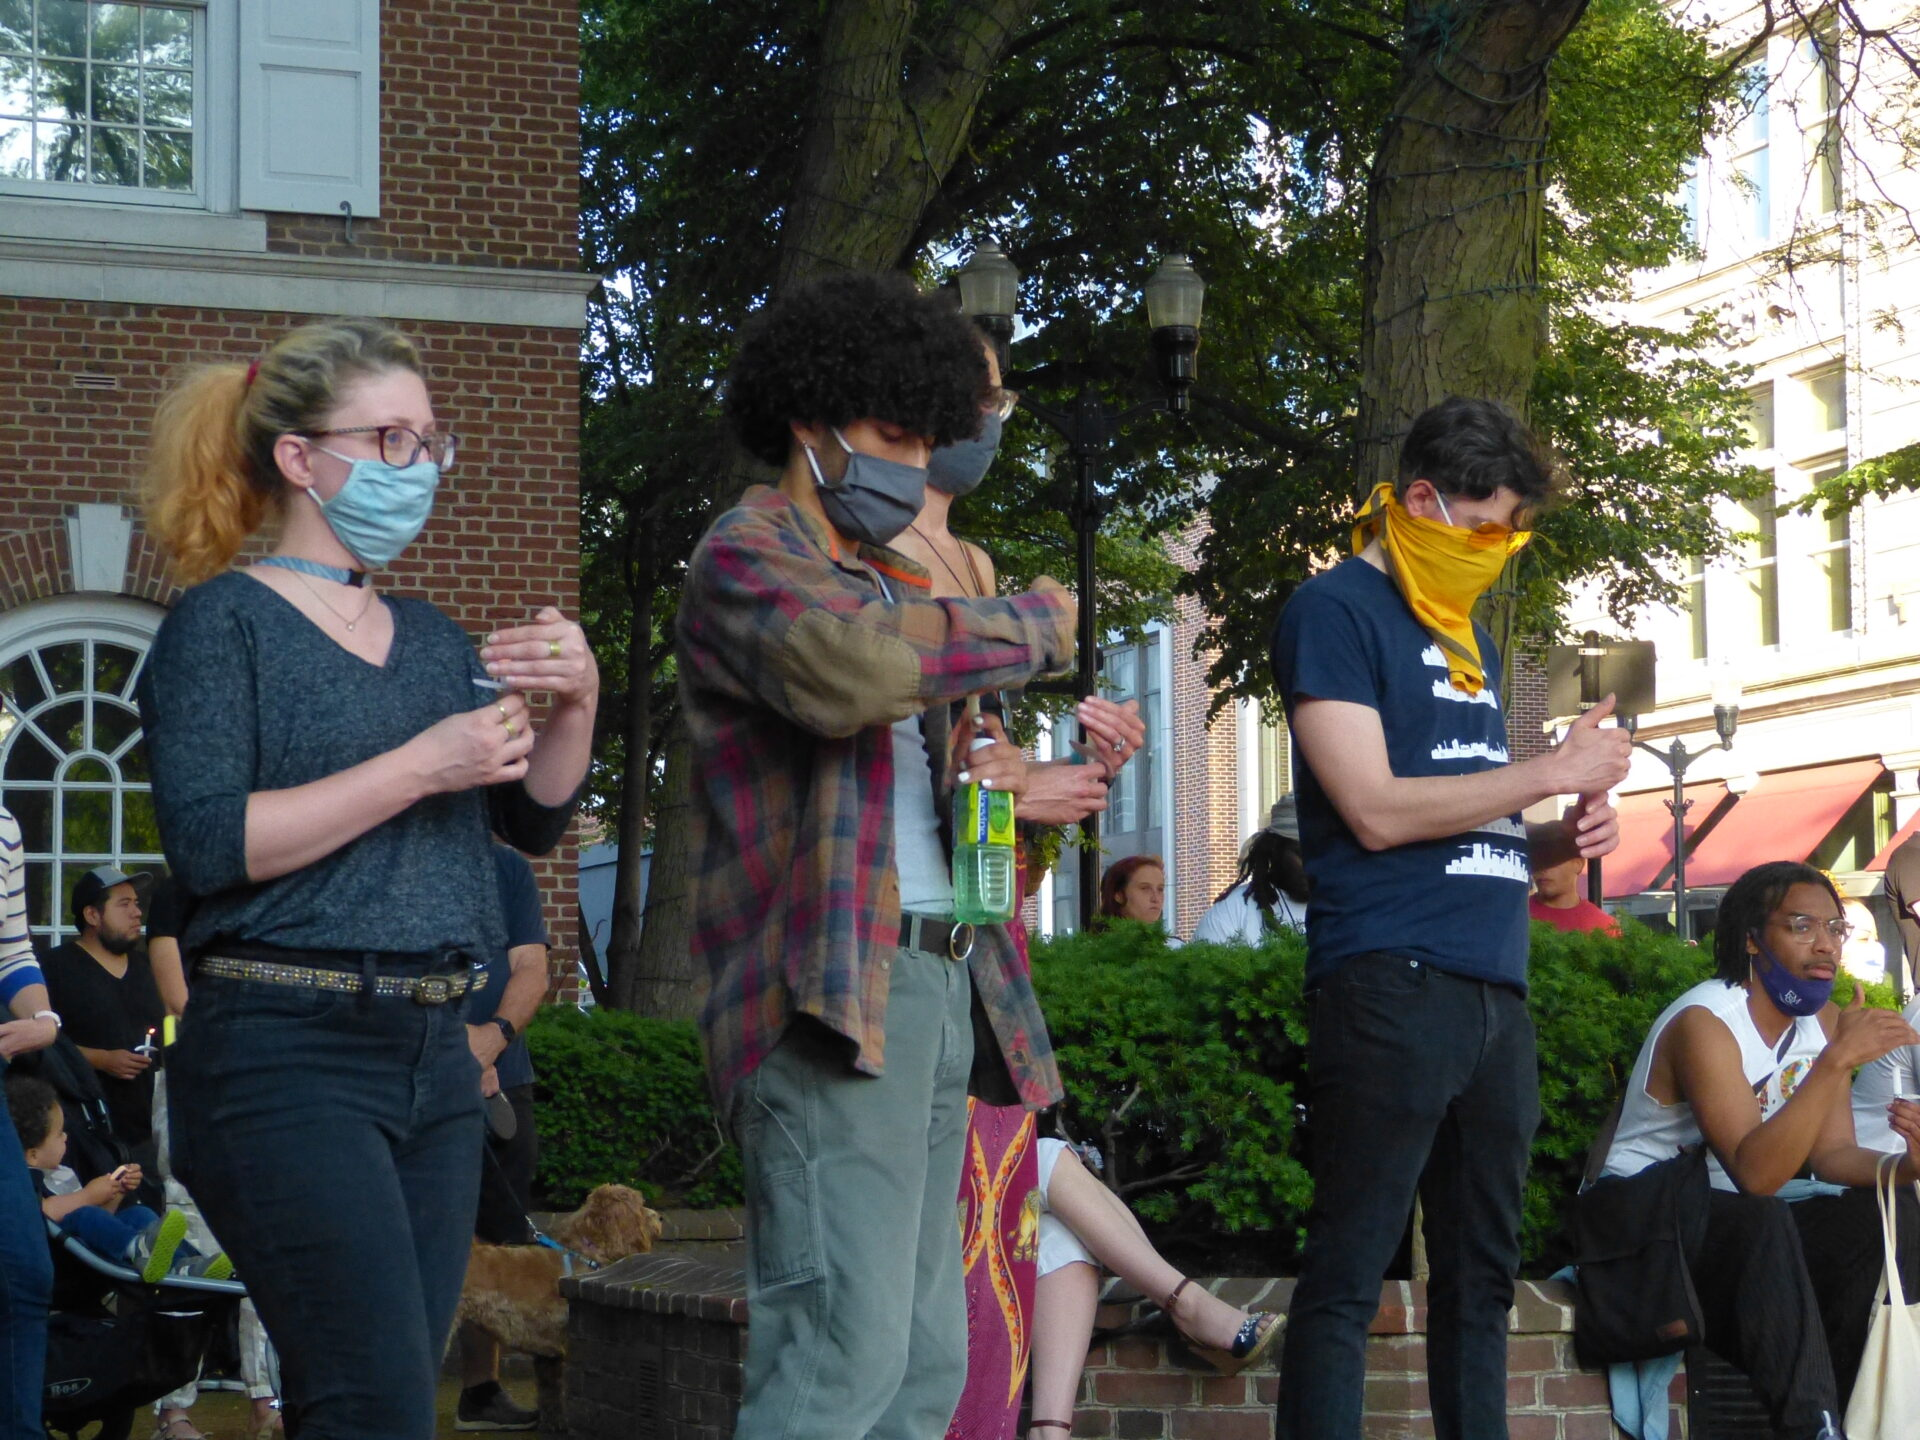 Attendees take part in a vigil in Penn Square one year after George Floyd's death, on Tuesday, May 25, 2021. (Photo: Olivia Smucker)